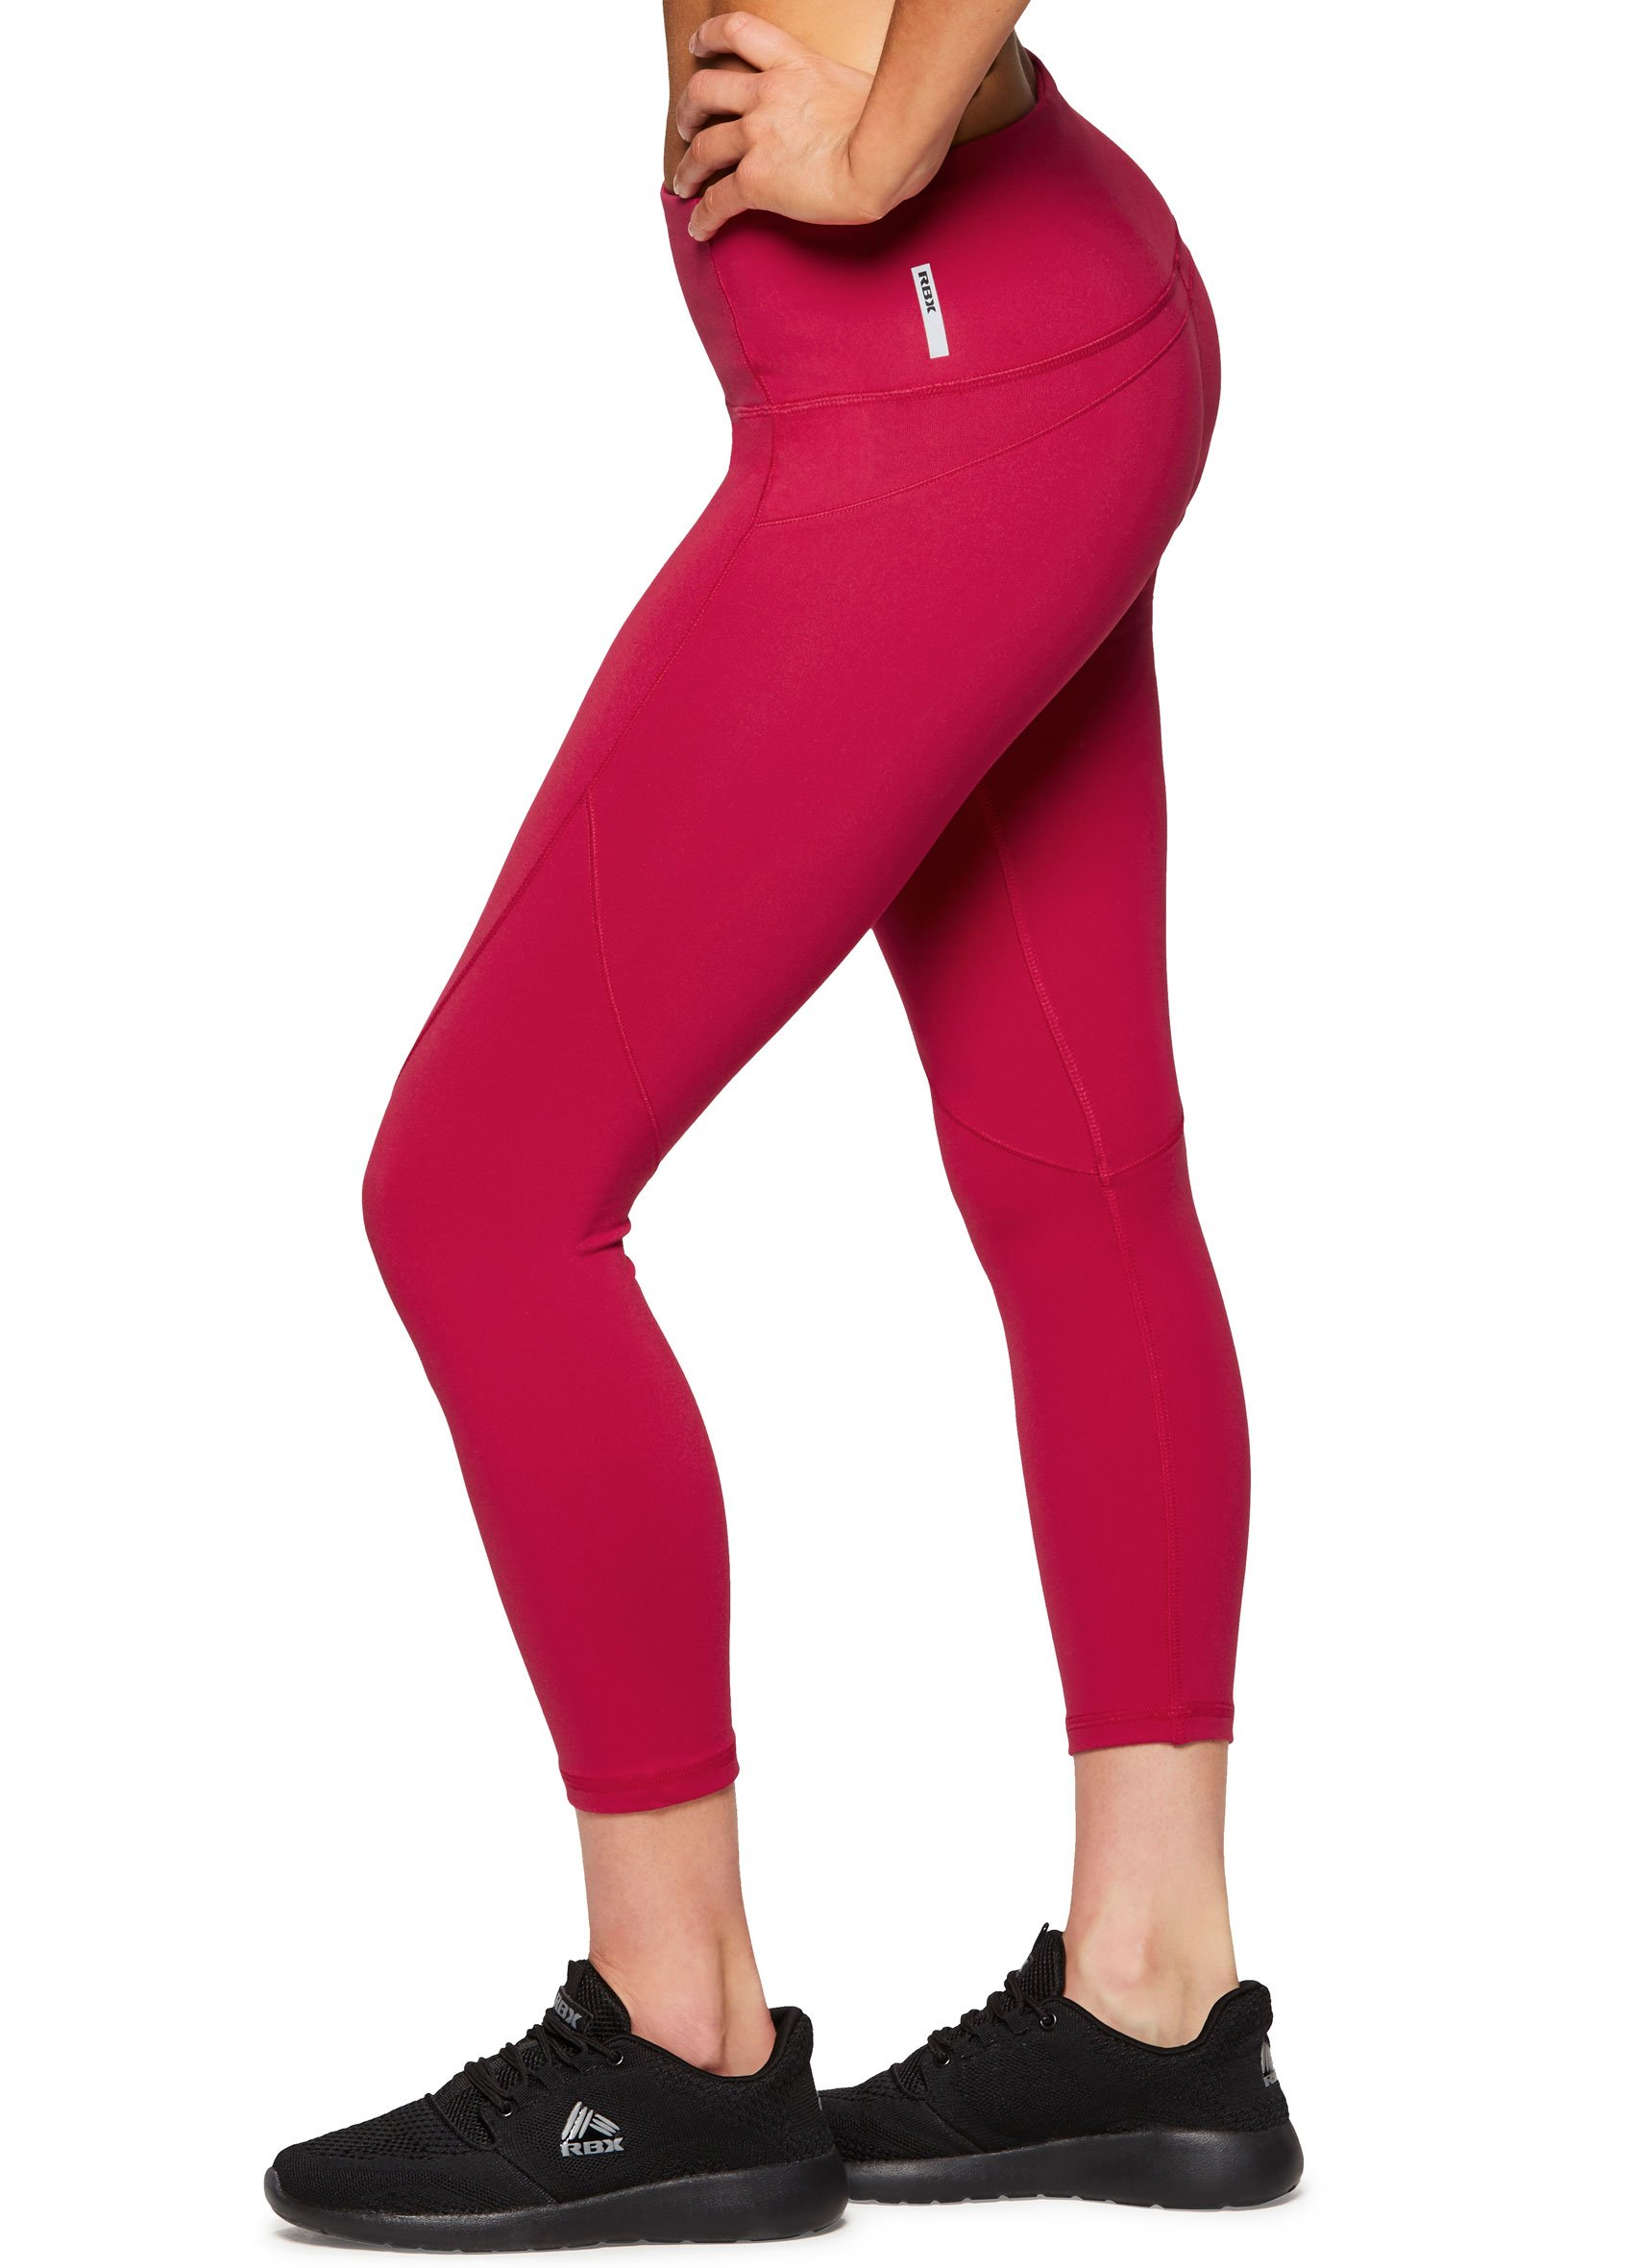 RBX Active Women's High Waist Yoga Workout Leggings Power Hold Red XL